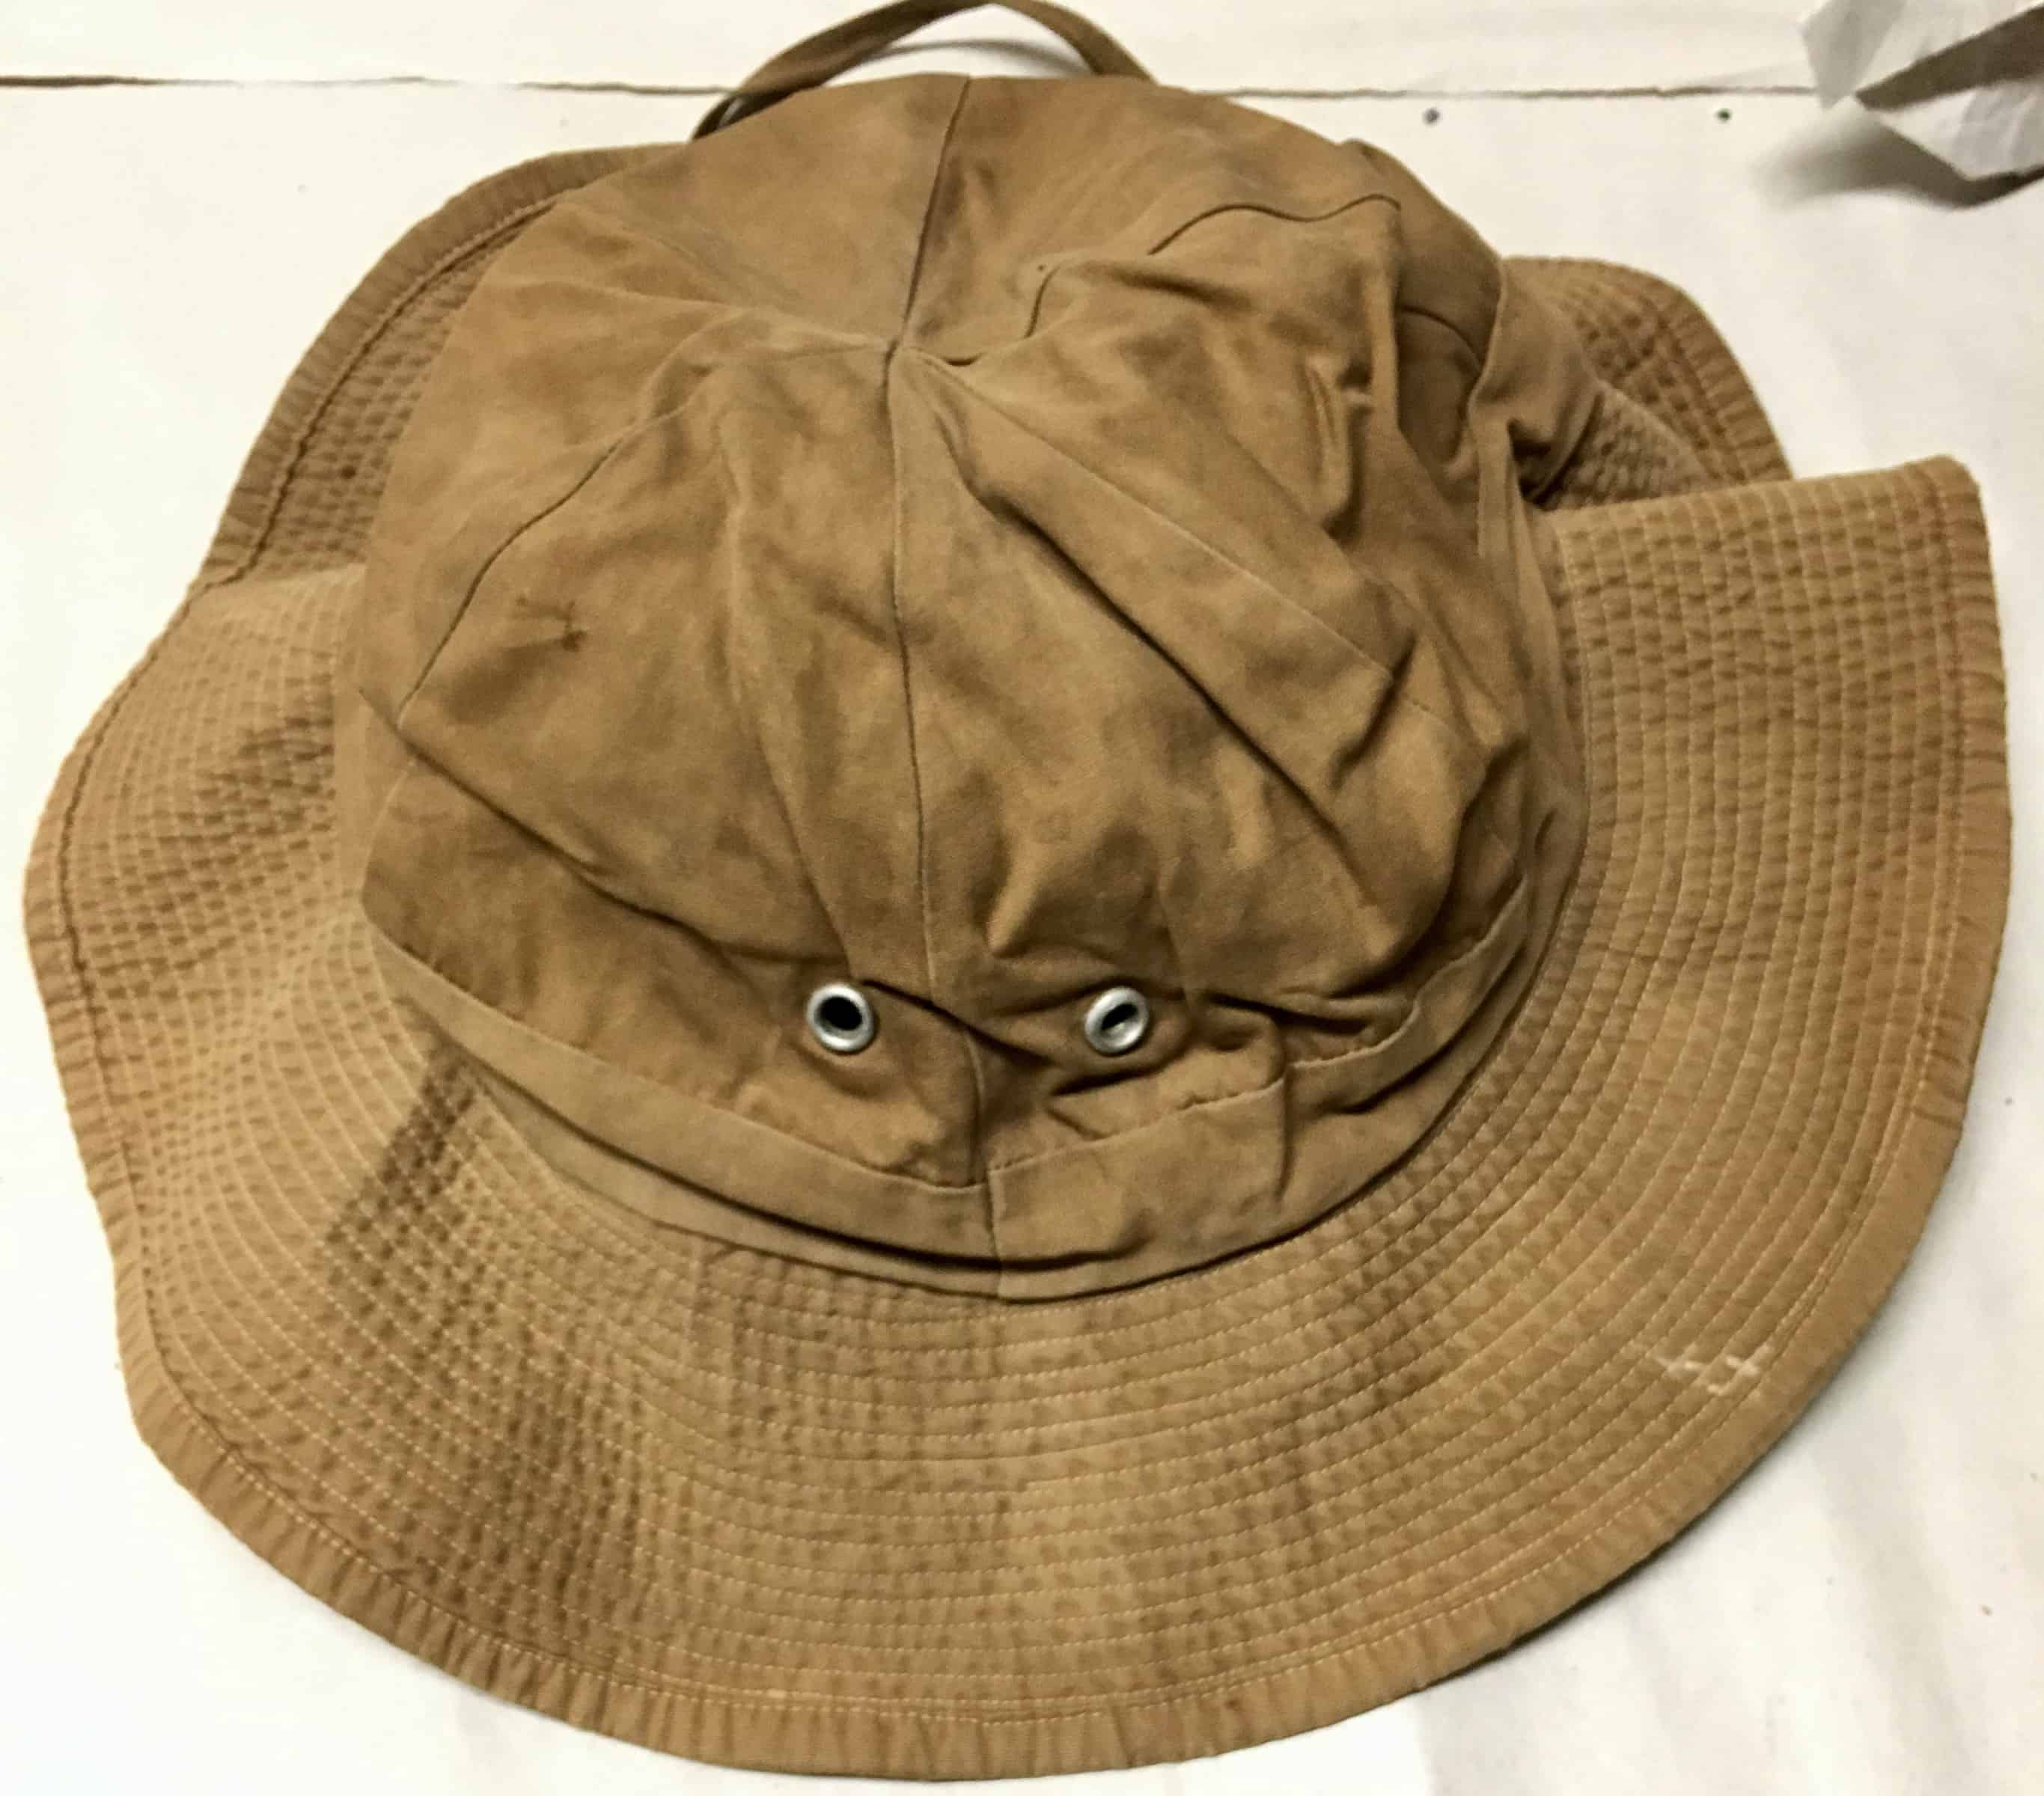 9332a50b ... North Vietnamese Army Viet Cong Boonie Hat Wide Brim Khaki Clay Color  100% Authenticity Guaranteed 30-day Returns. Sale!